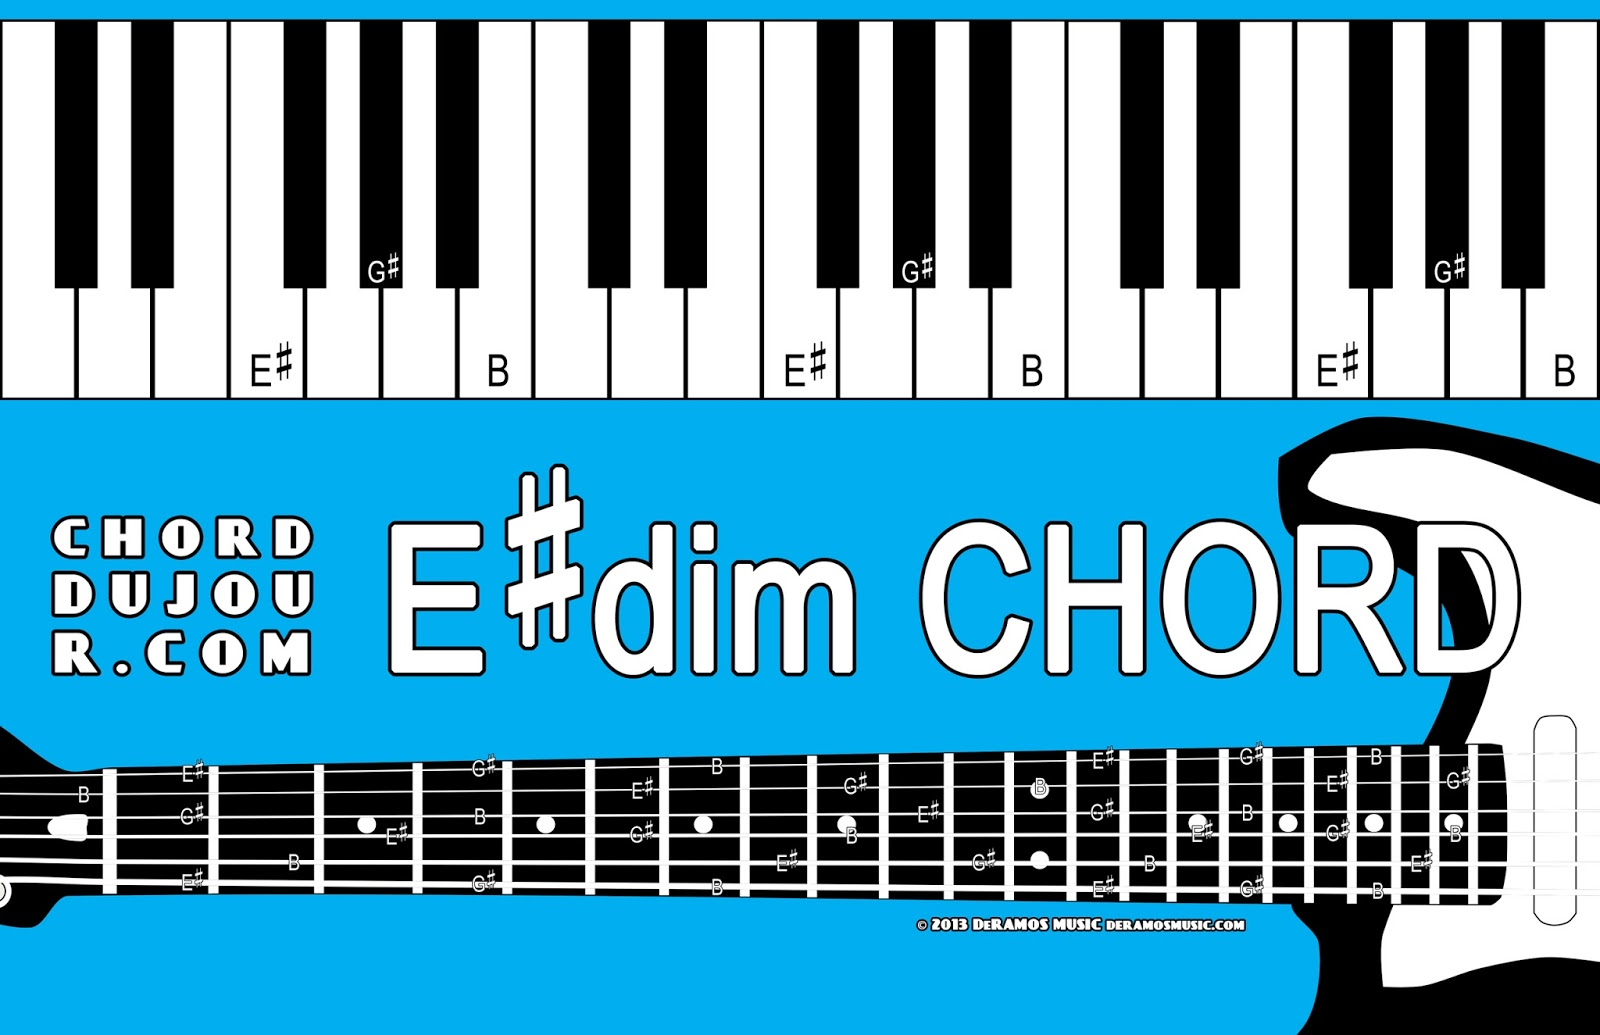 Chord du jour dictionary edim chord the e sharp diminished chord e g b is essentially the fdim chord f ab cb note to chord du jour create an entry for the f diminished chord hexwebz Image collections